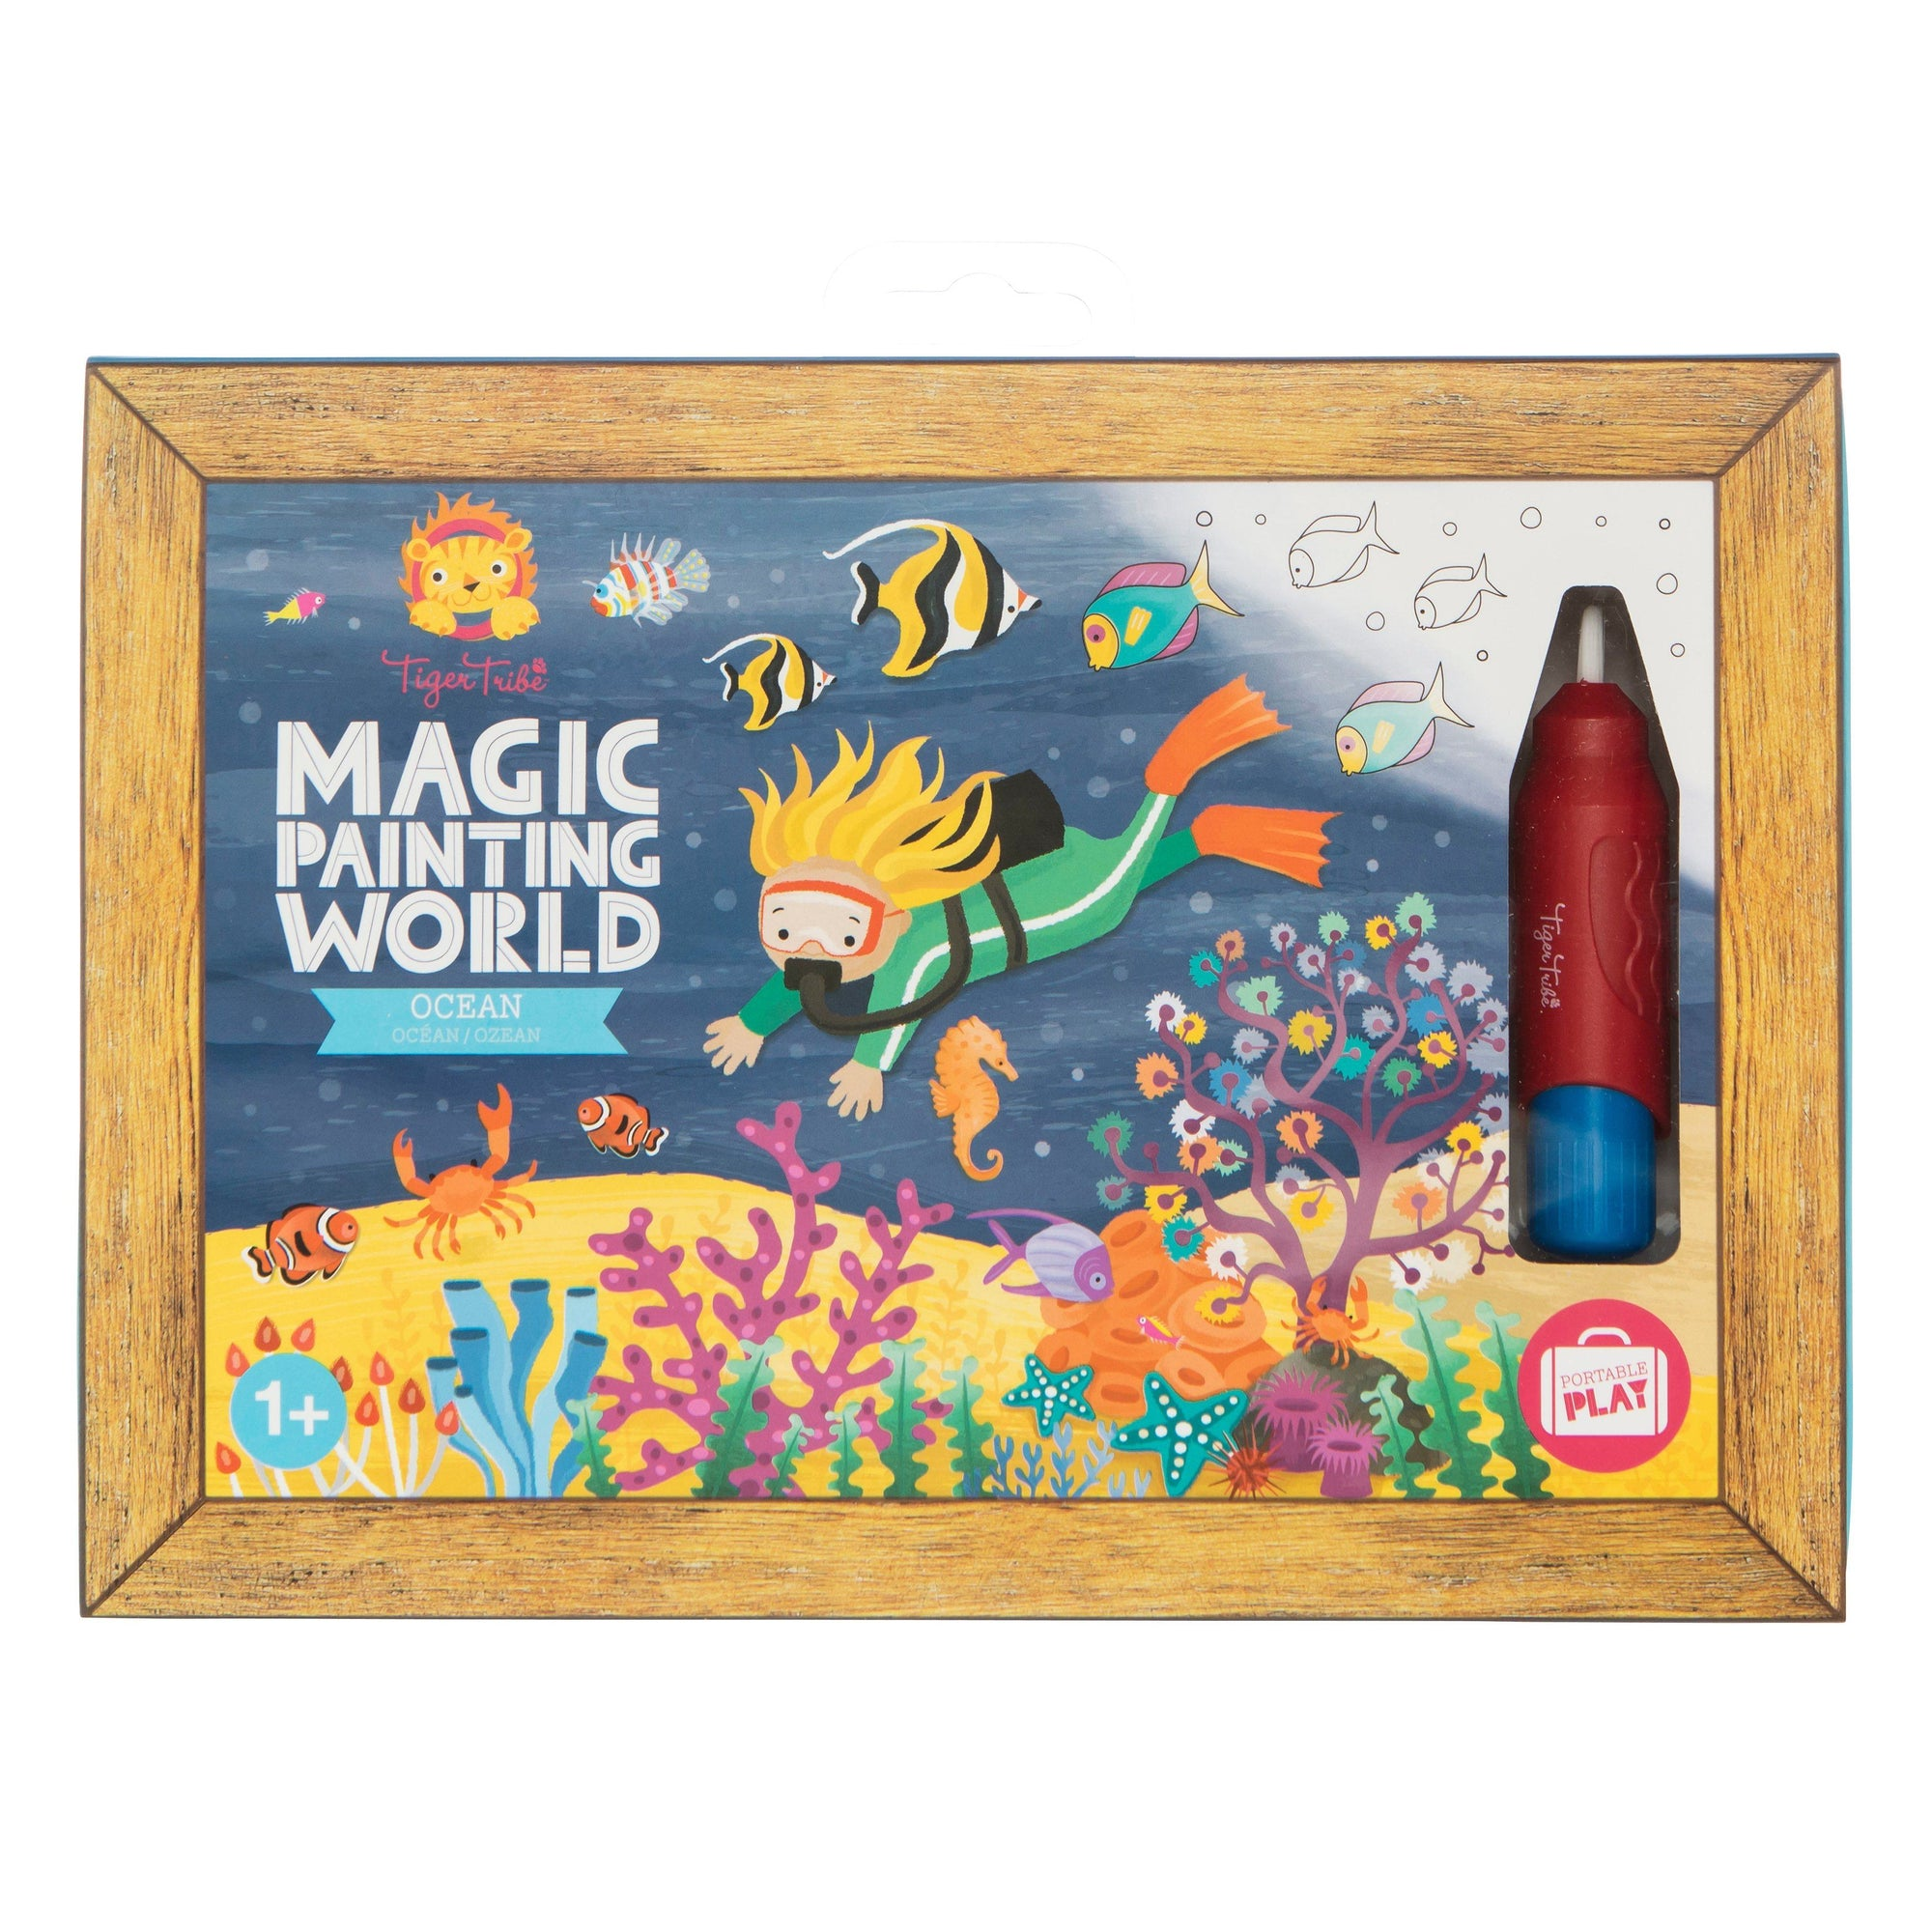 Magic Painting World (Ocean)